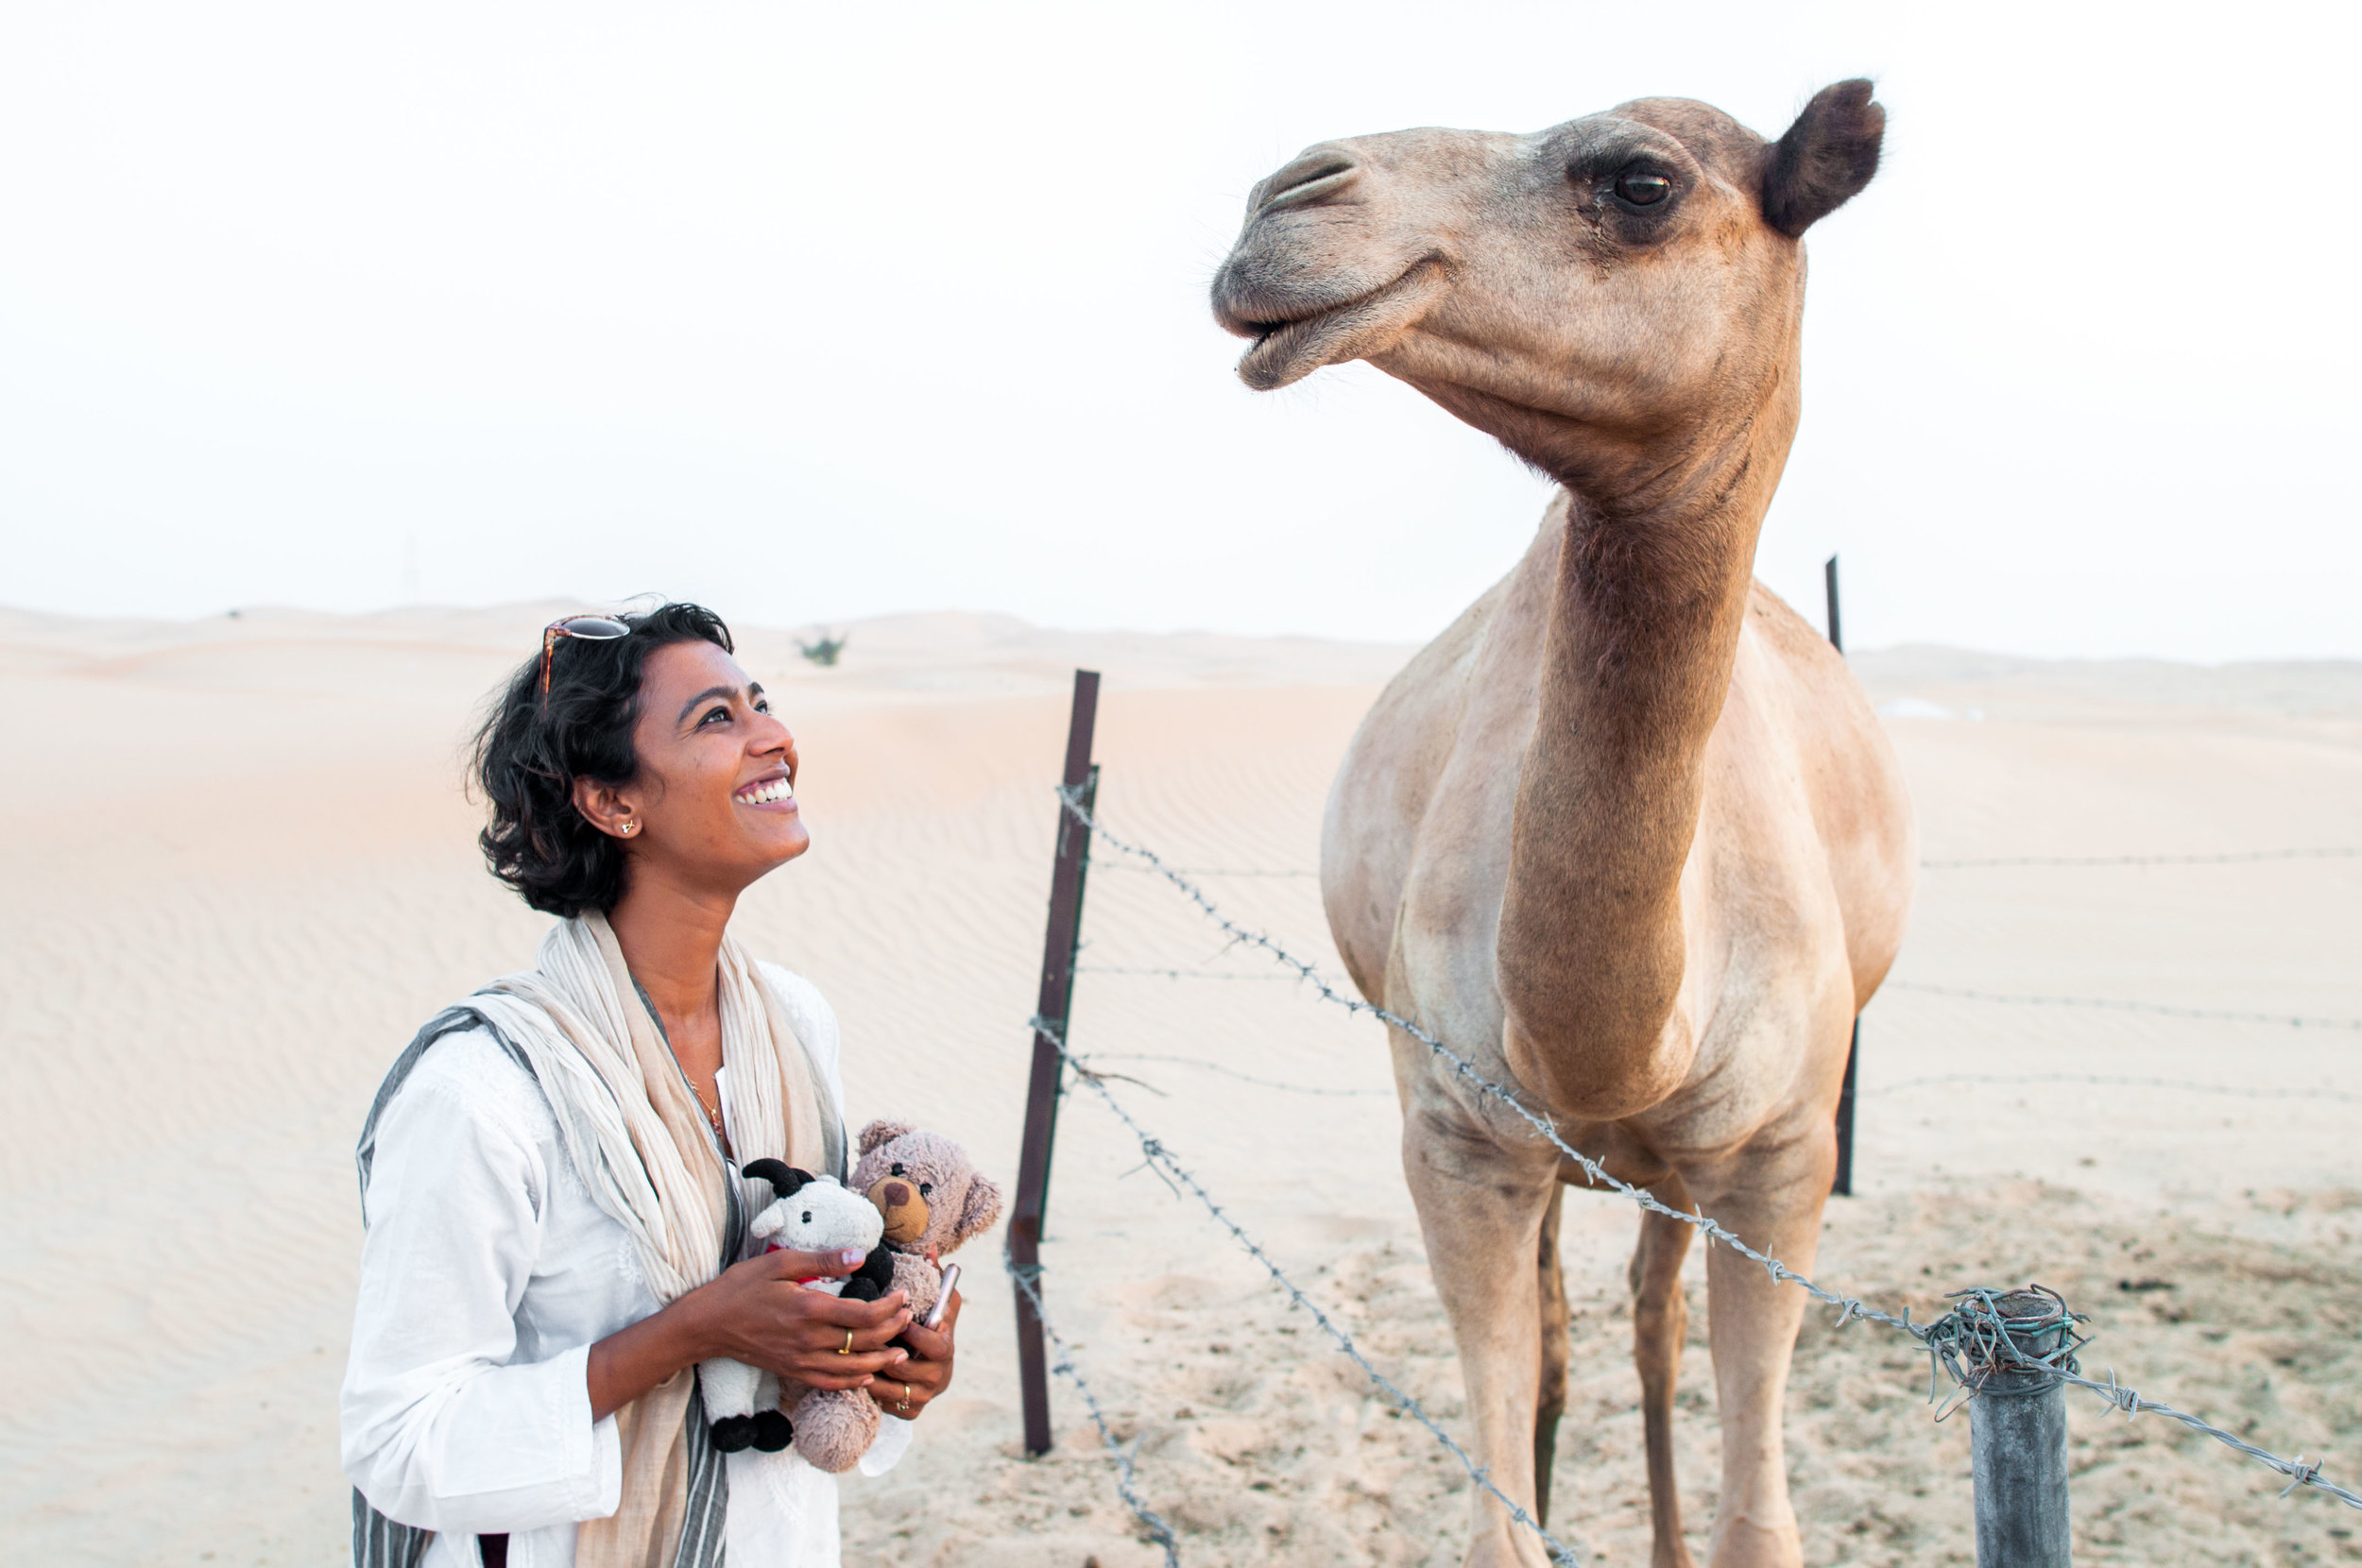 Communing with the camel